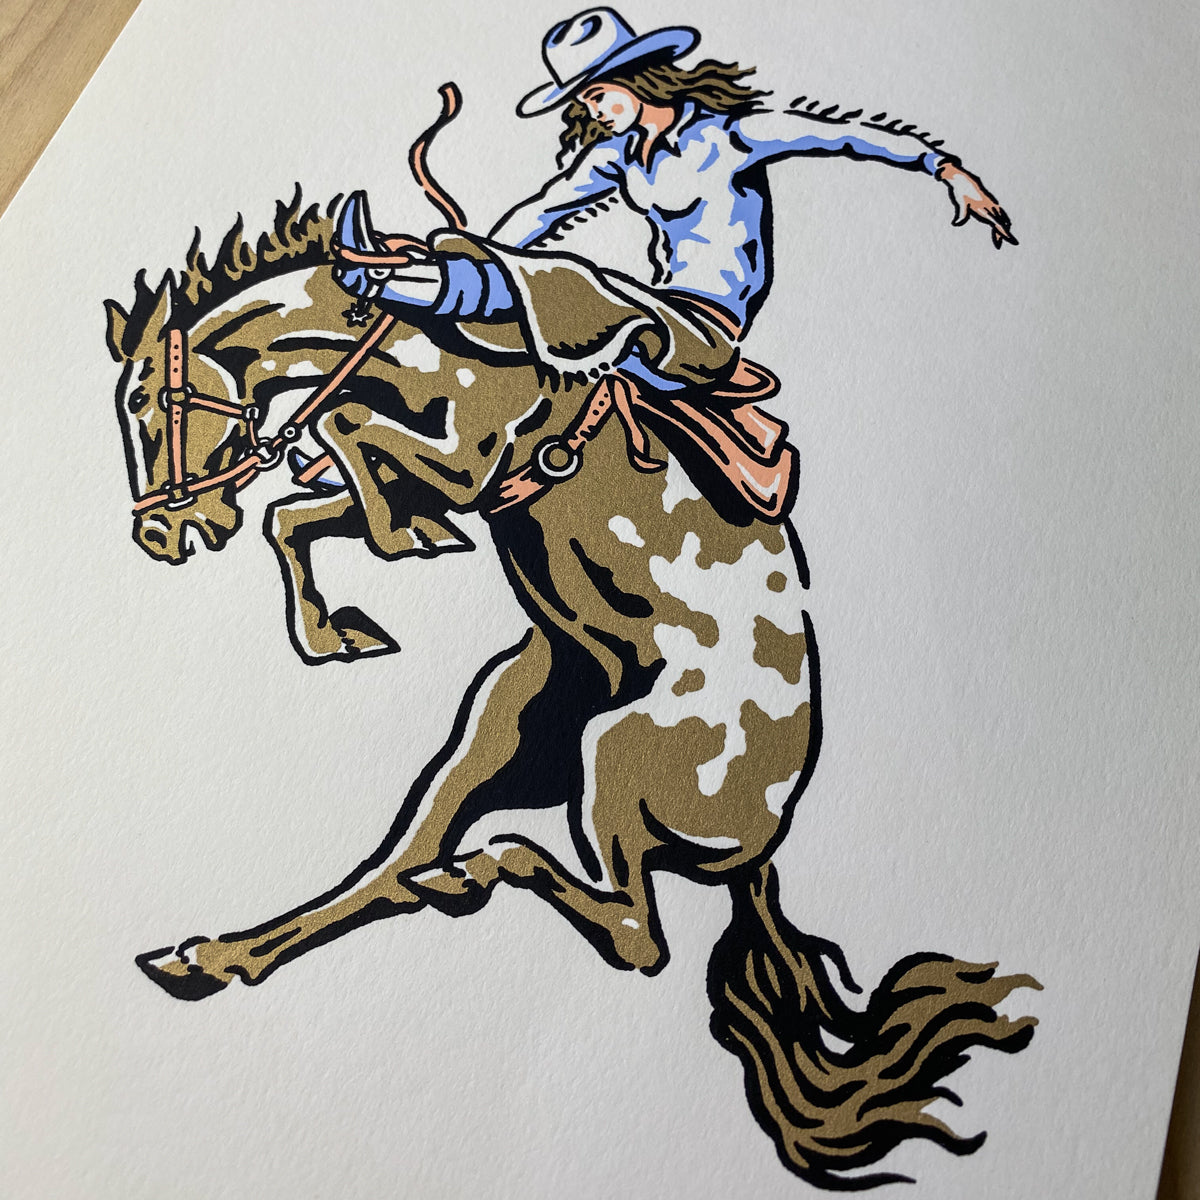 Bronco Rider - Signed 8x10in Print #252